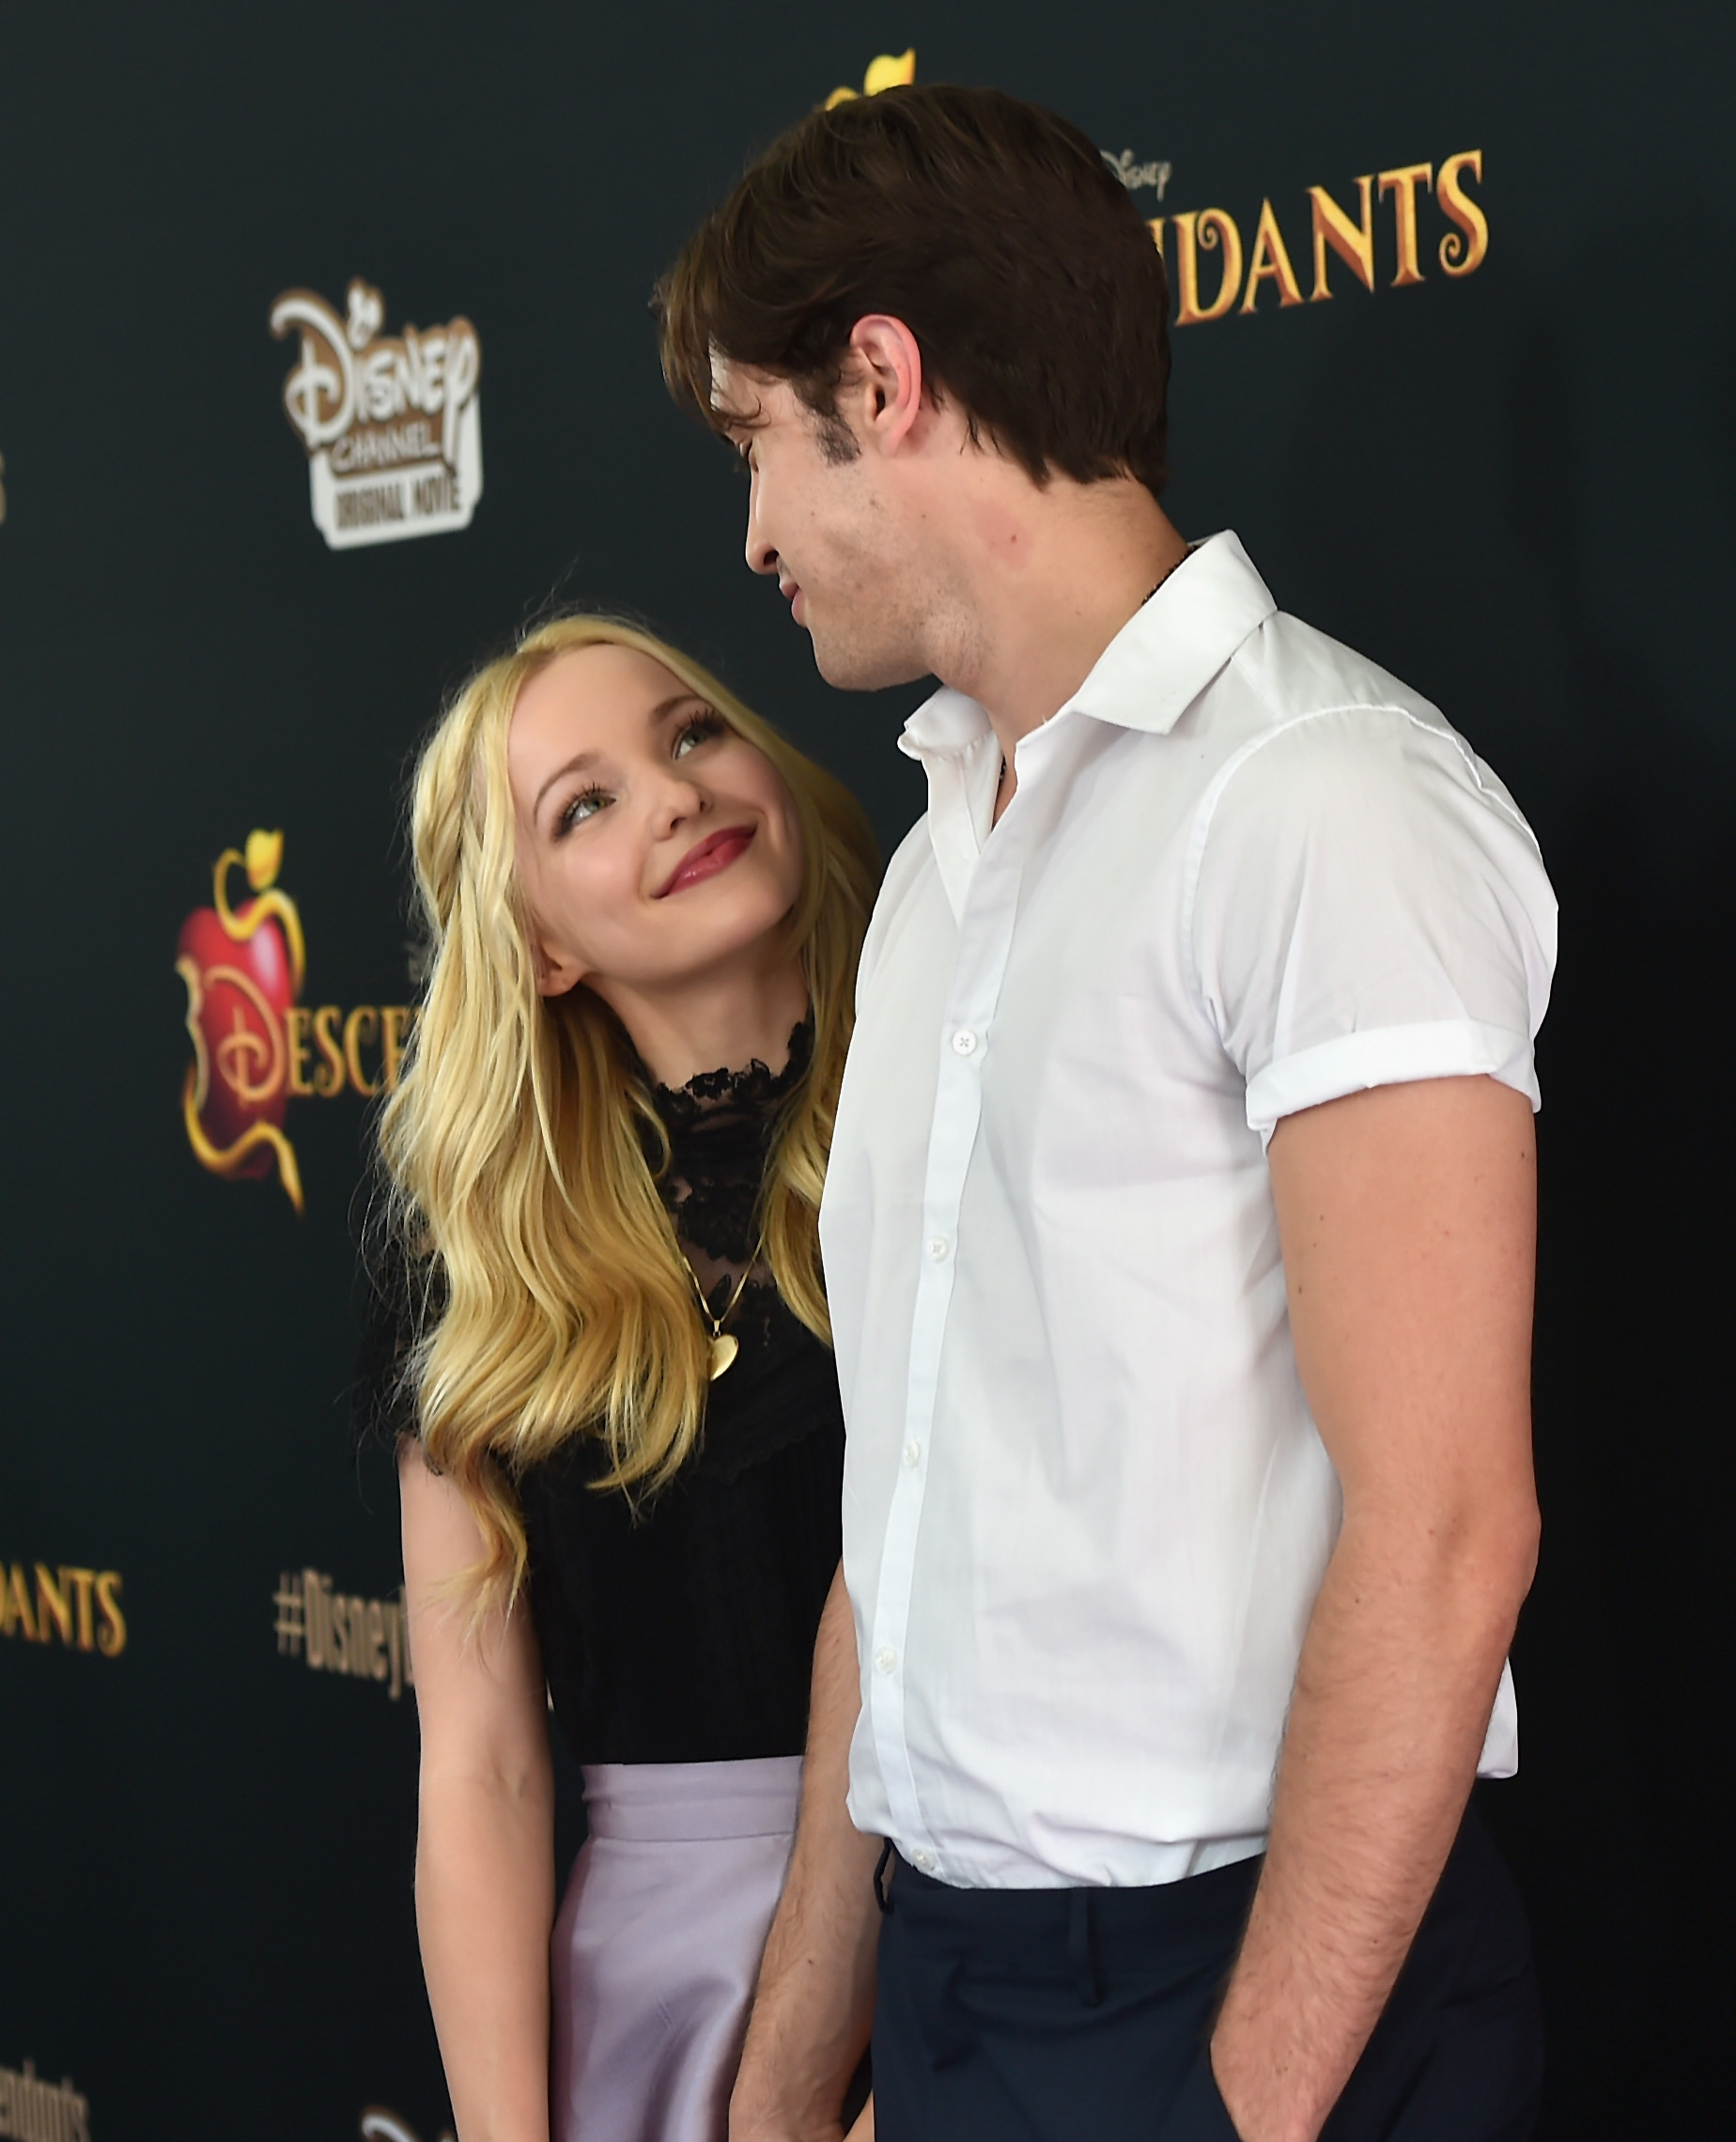 disney channel stars and who they are dating Dove cameron discusses the twist ending to disney channel's 'descendants,' which premiered friday descendants stars on twist ending.